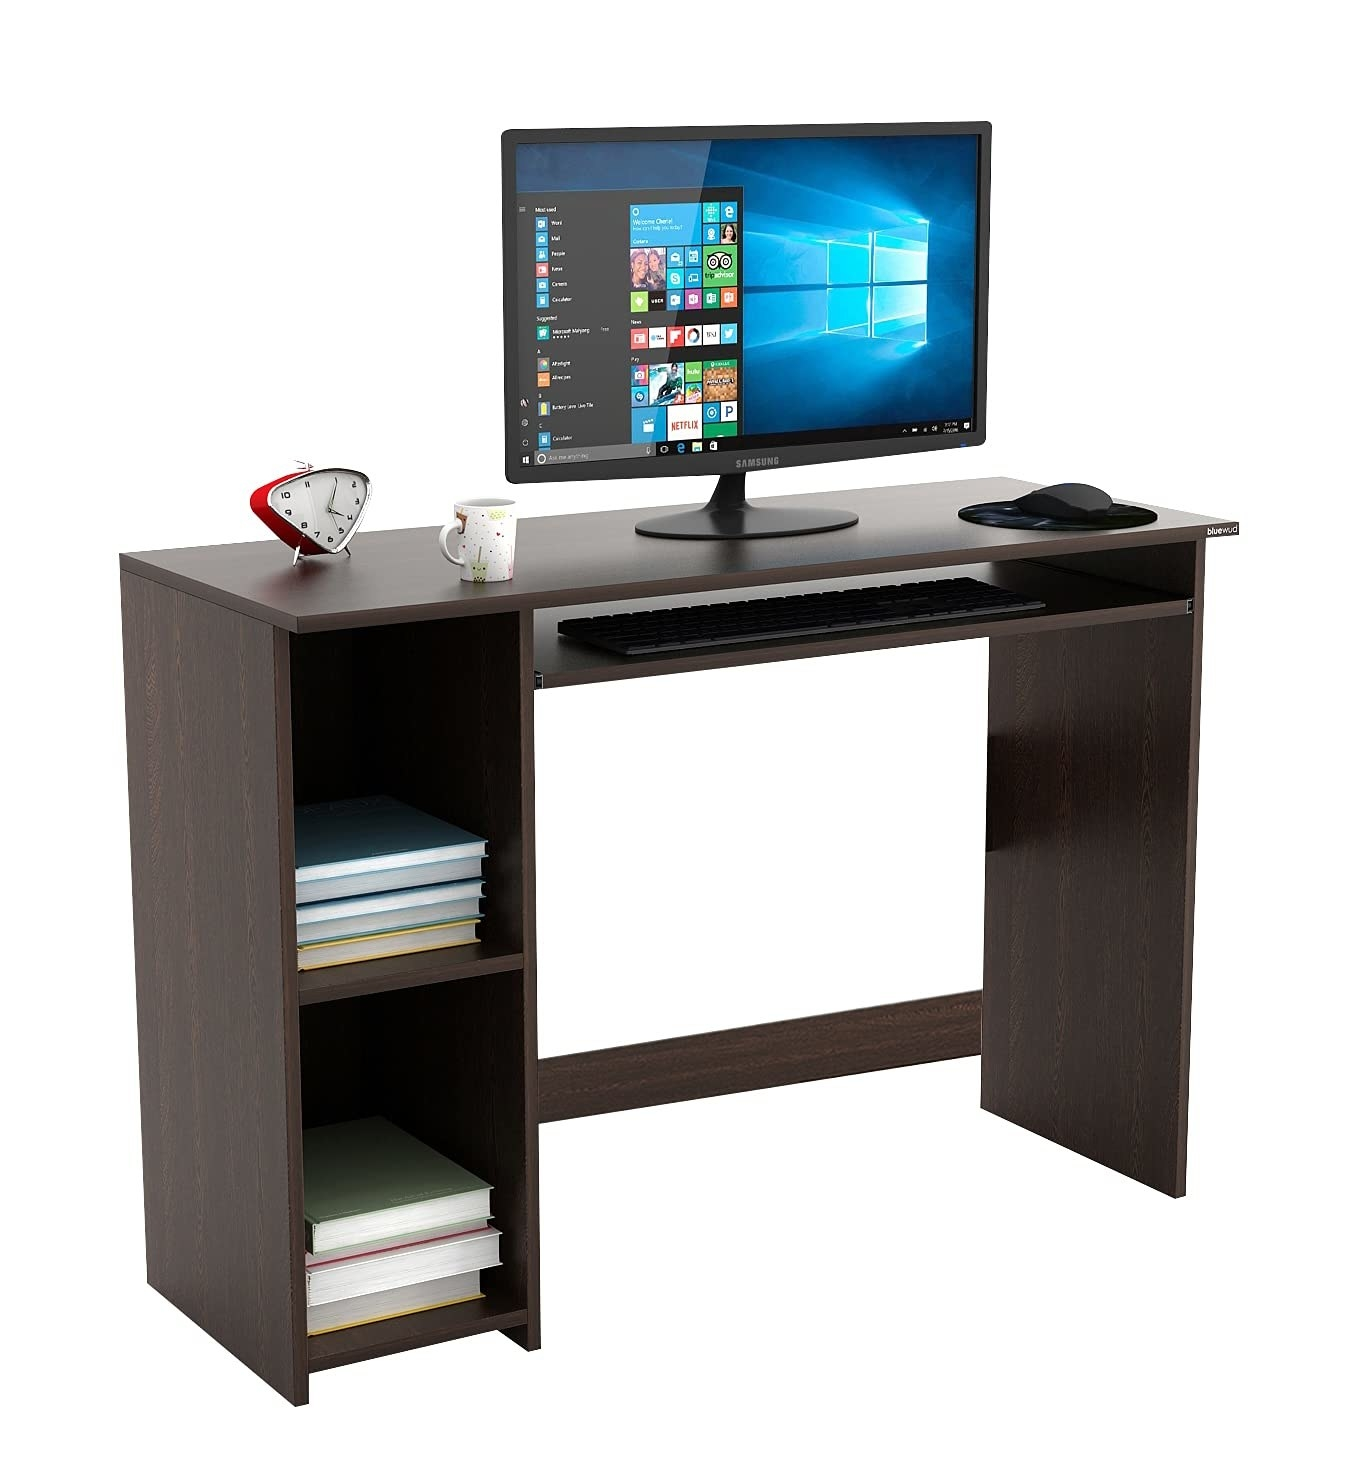 A wooden desk with a monitor and other items on top, and books stored in its multiple cabinets below